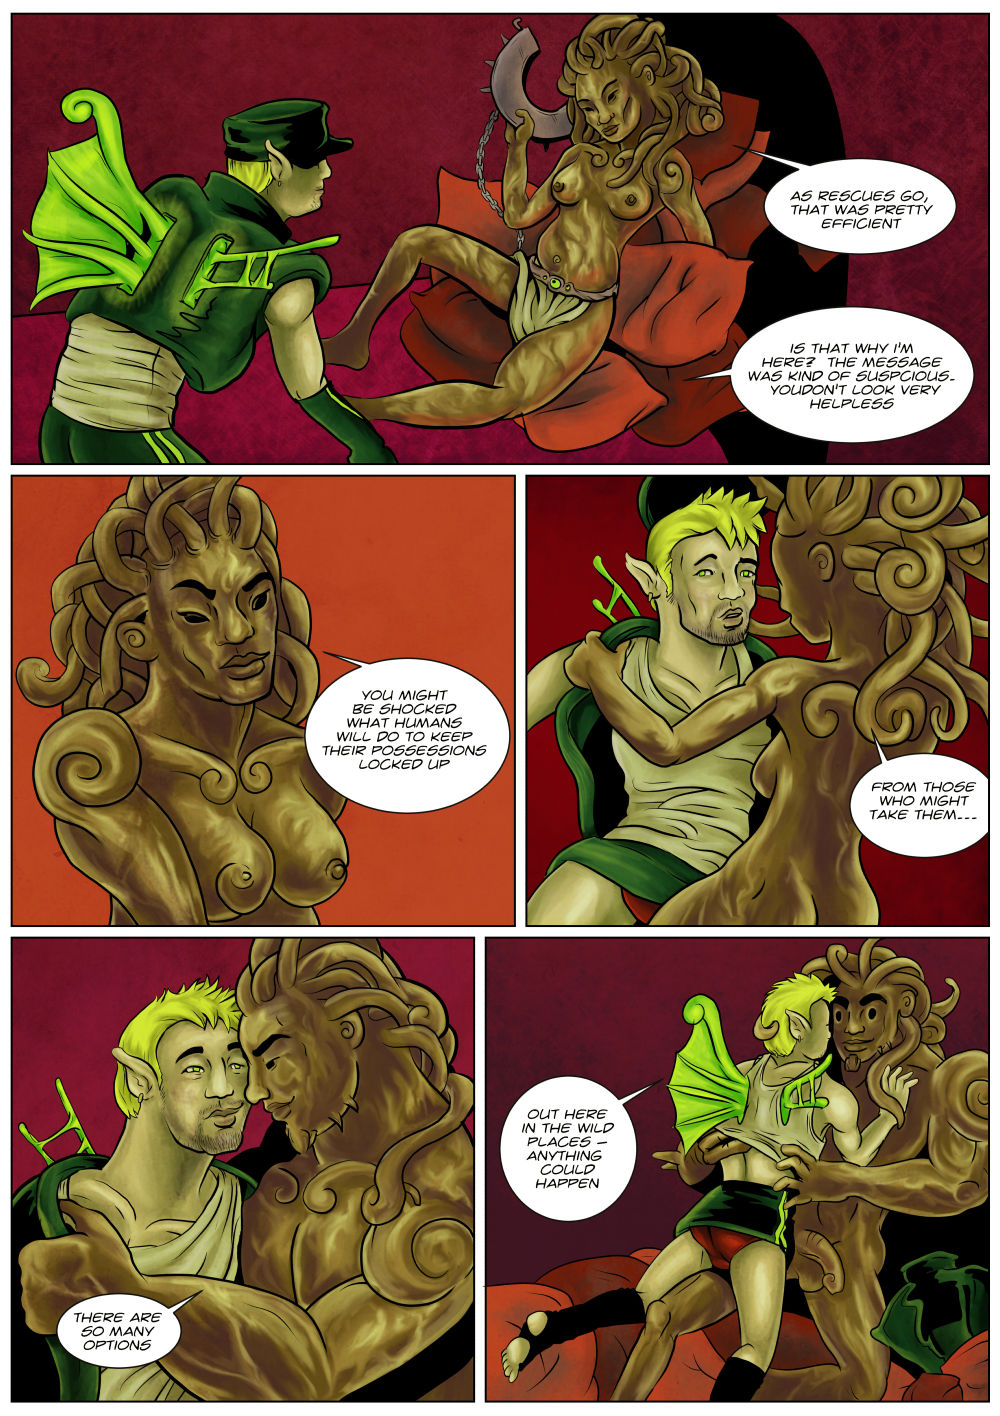 The Smith page 2